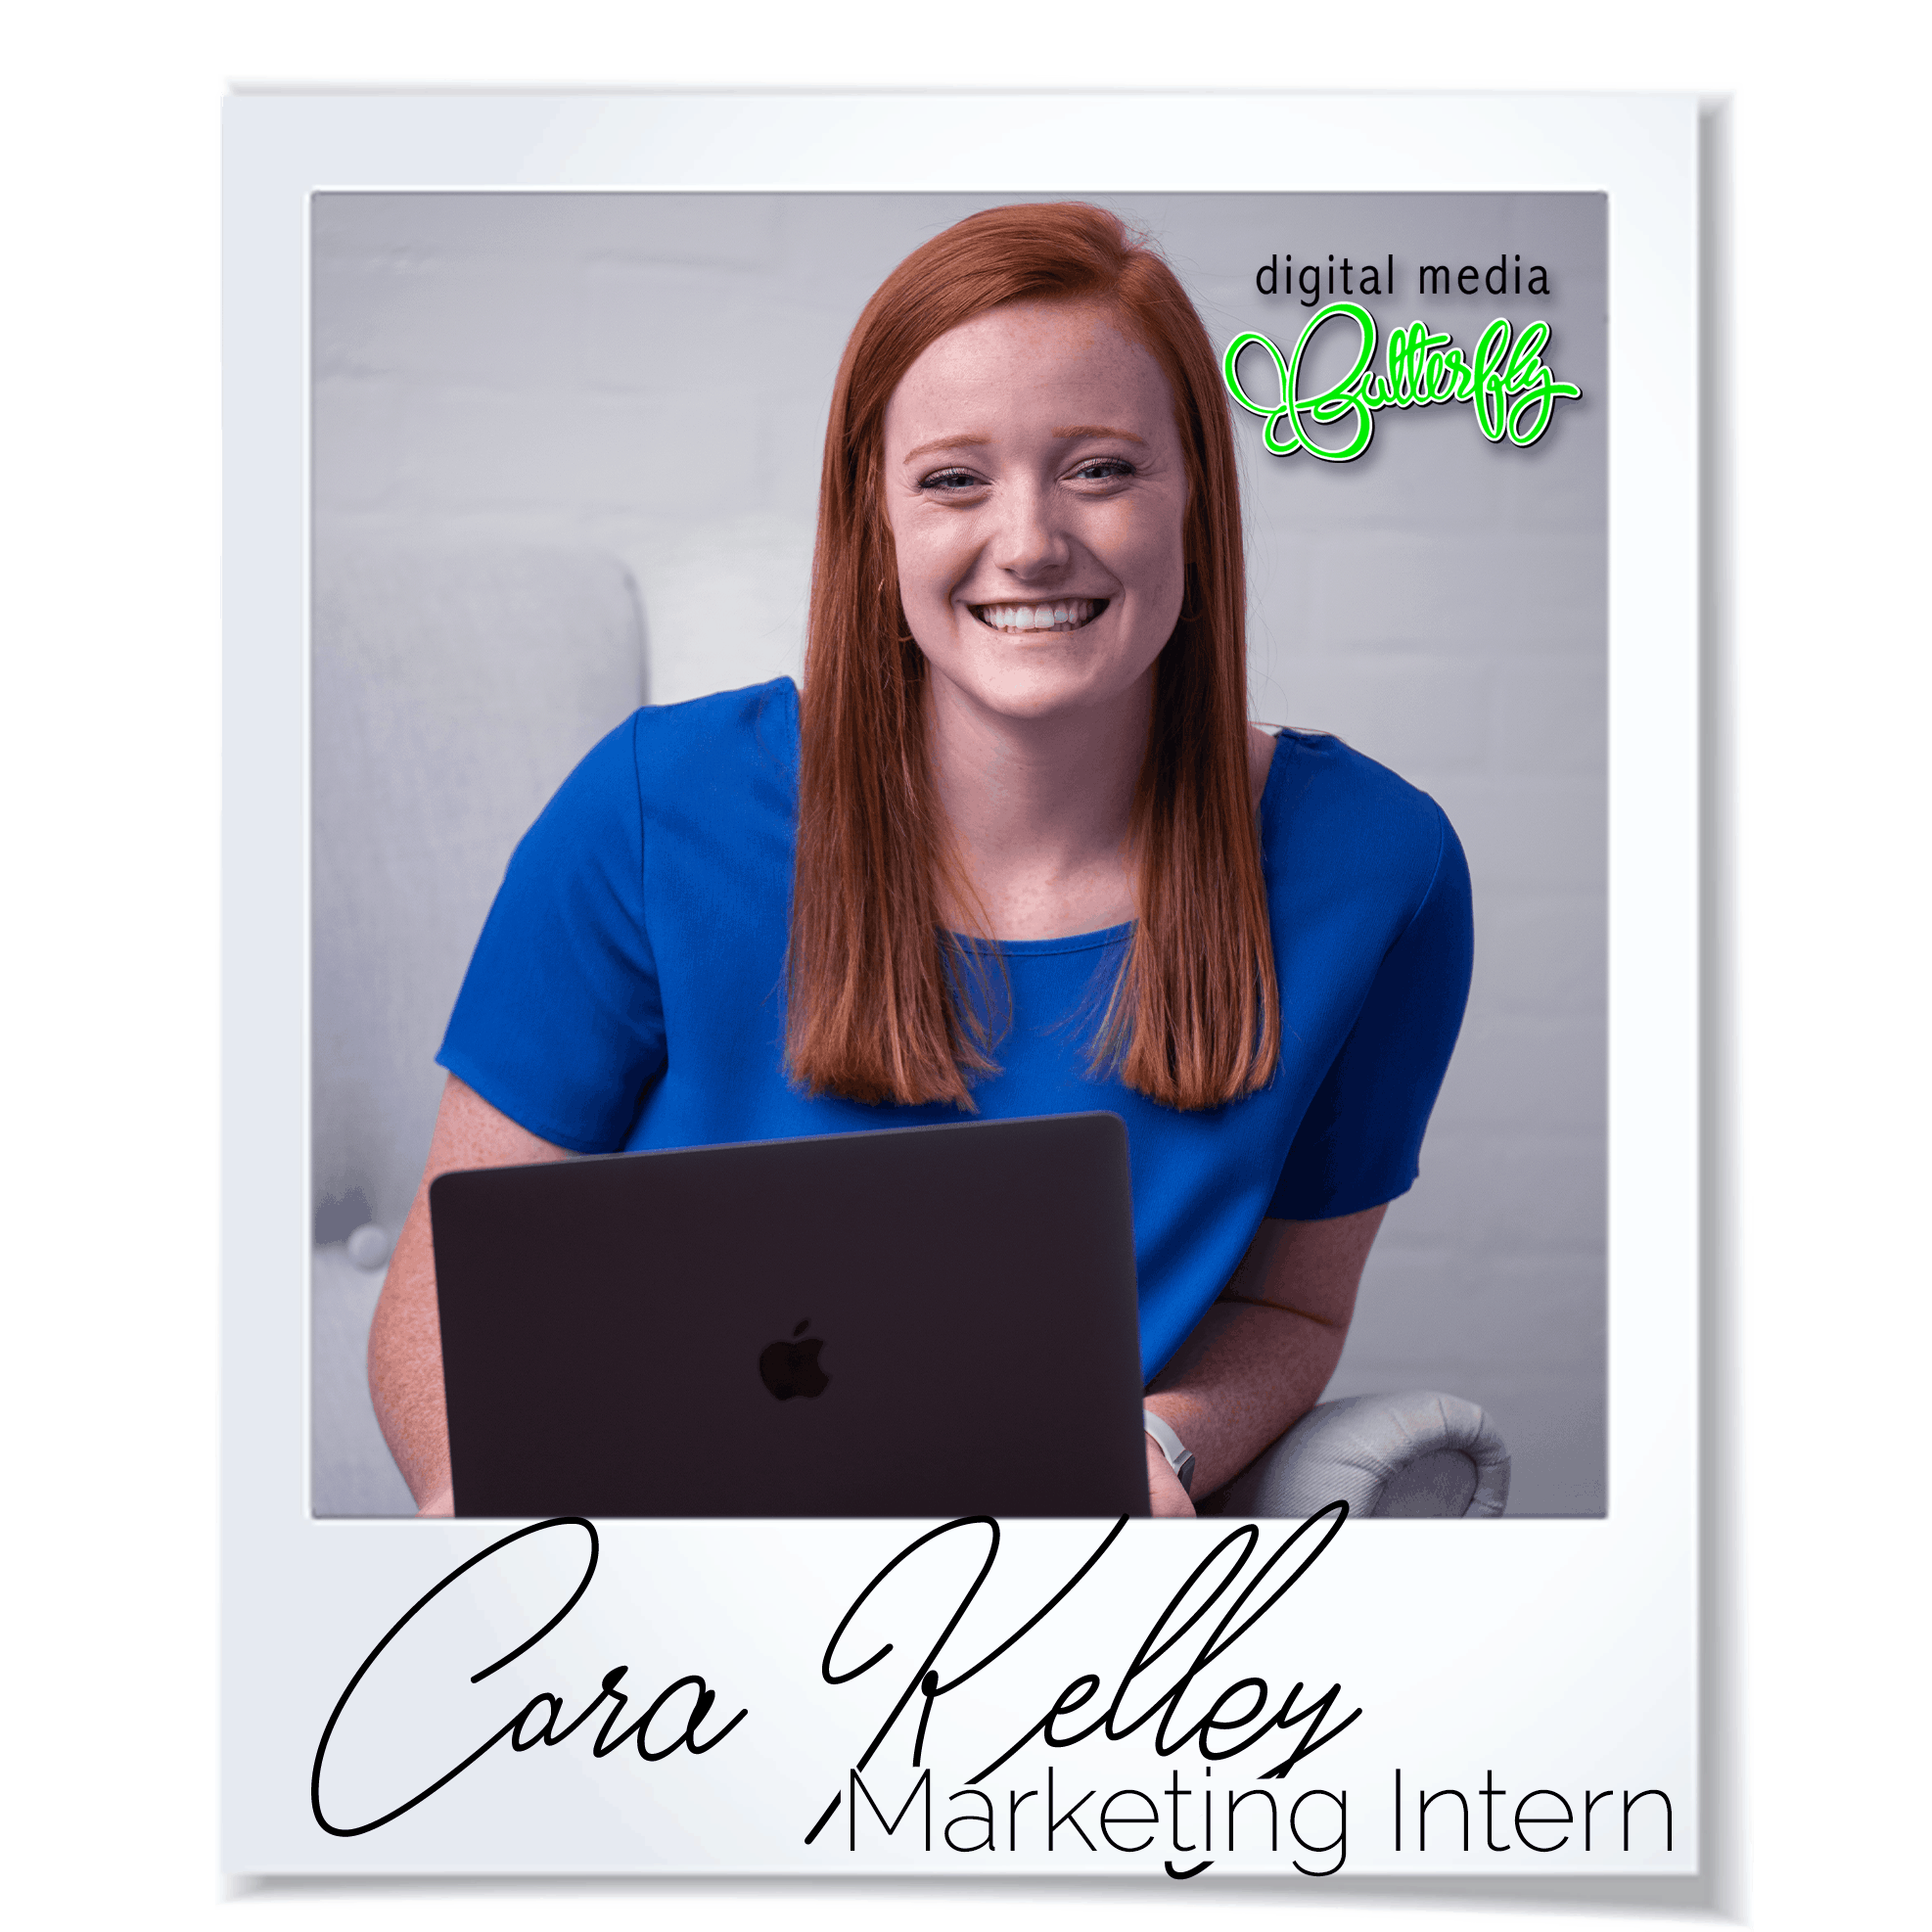 Cara-Kelley-Digital-Media-Butterfly-Marketing-Agency-Intern